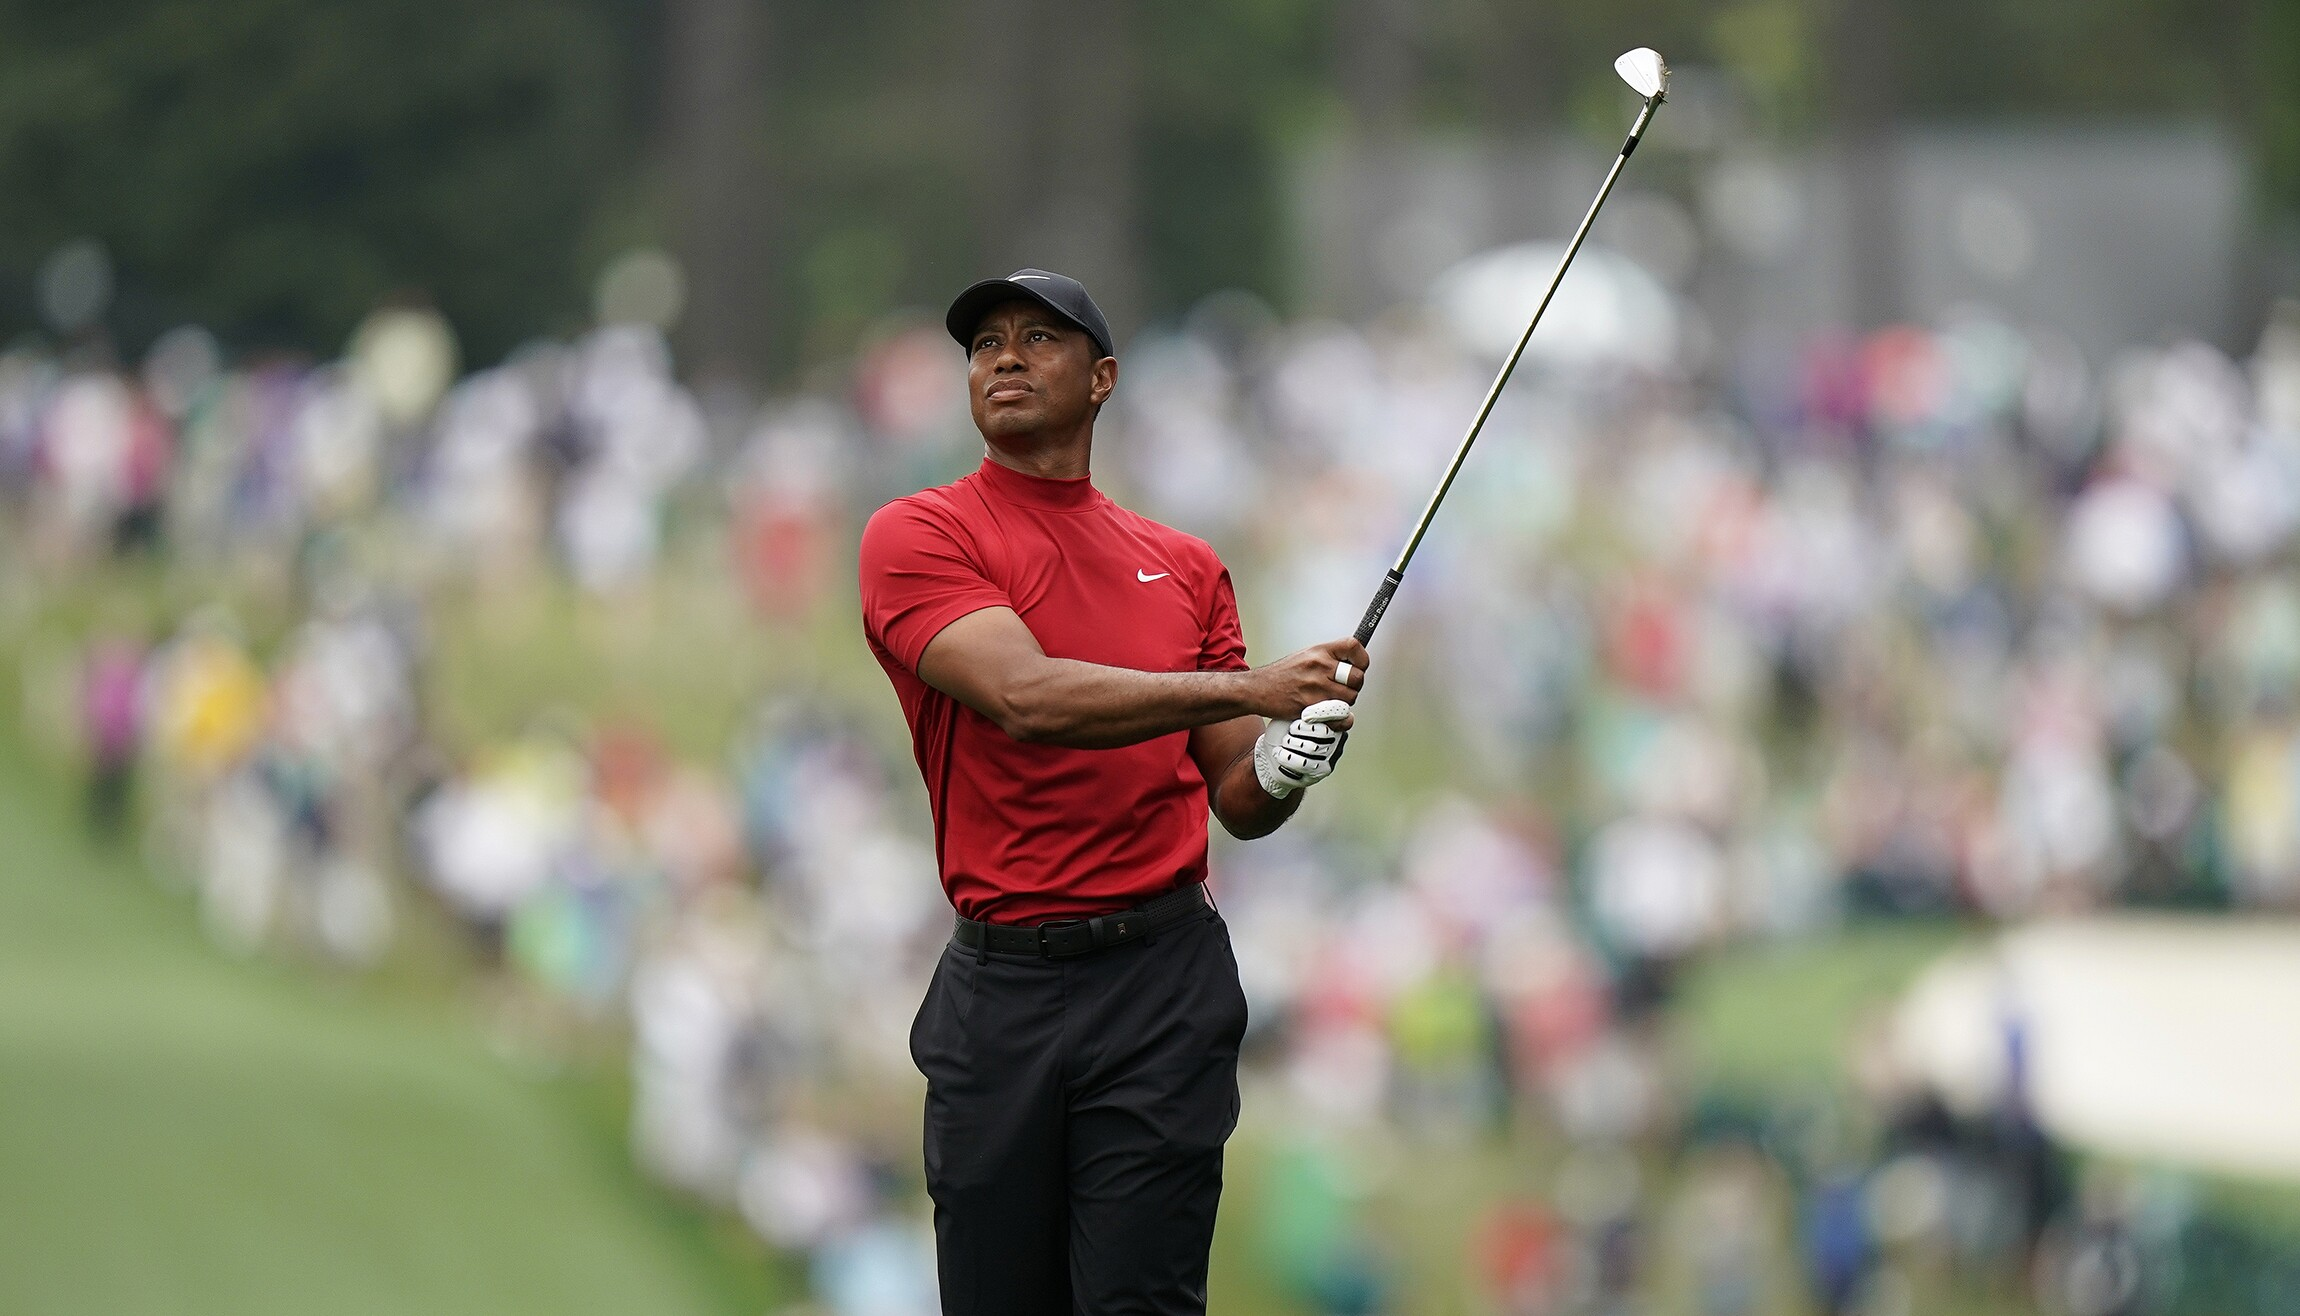 a0d272c7 Tiger Woods wins Masters, first major win since 2008